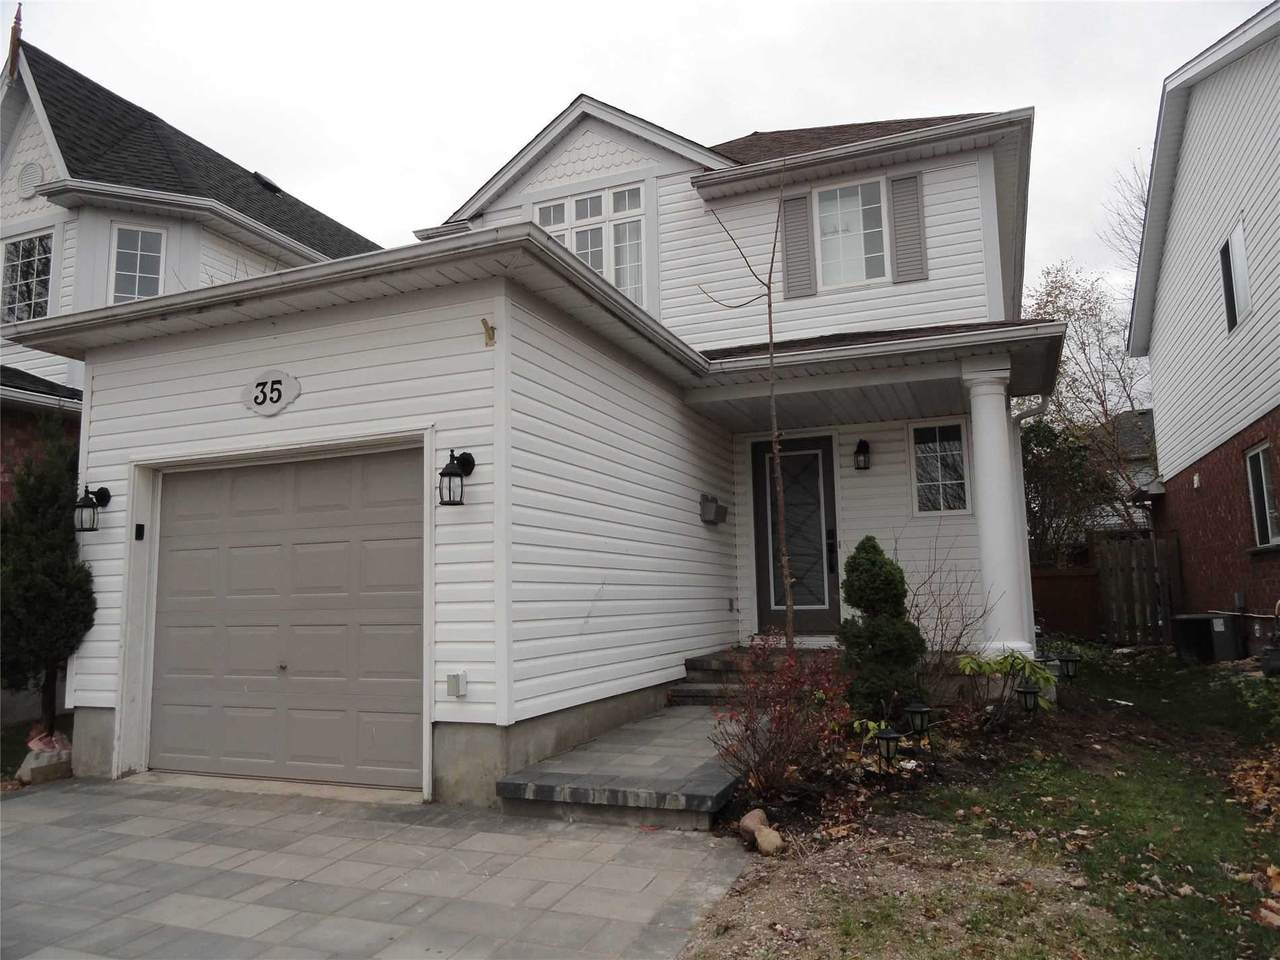 35 Jerry Dr - Photo 1